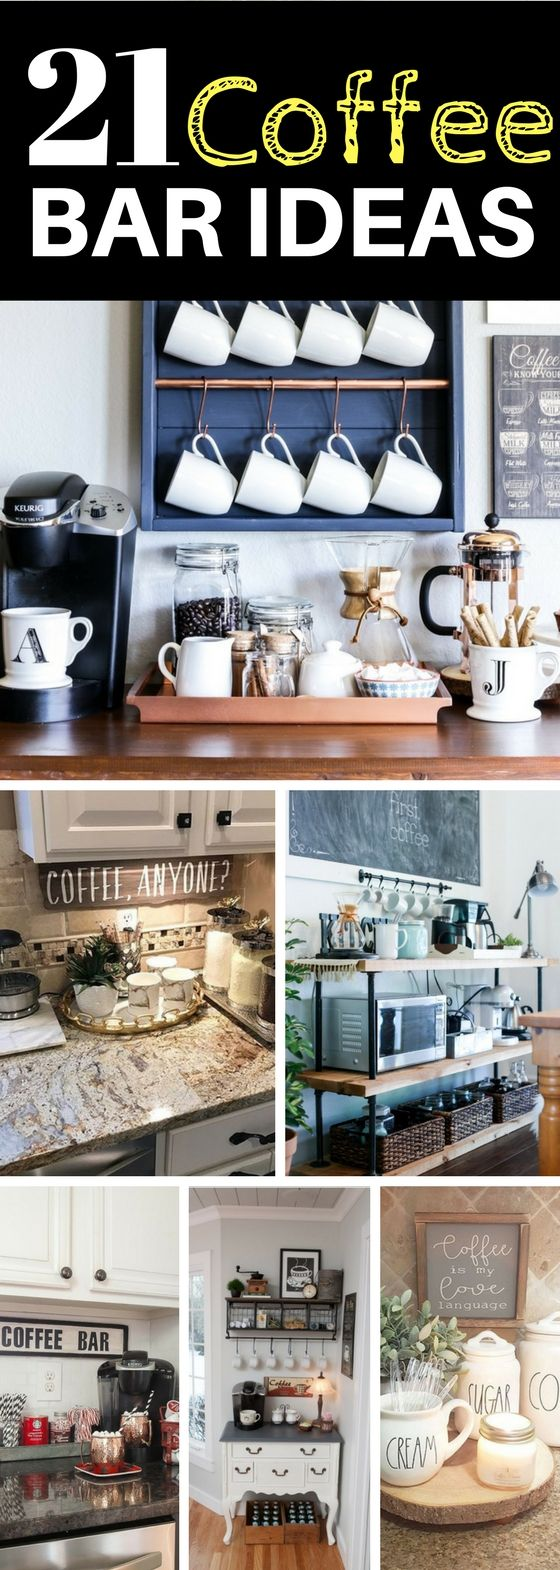 Coffee bar ideas that are simply out of this world. So many fantastic ways to make the kitchen and home decor look great with these coffee bar ideas! Includes rustic, farmhouse, industrial, and modern layouts for your own diy station.